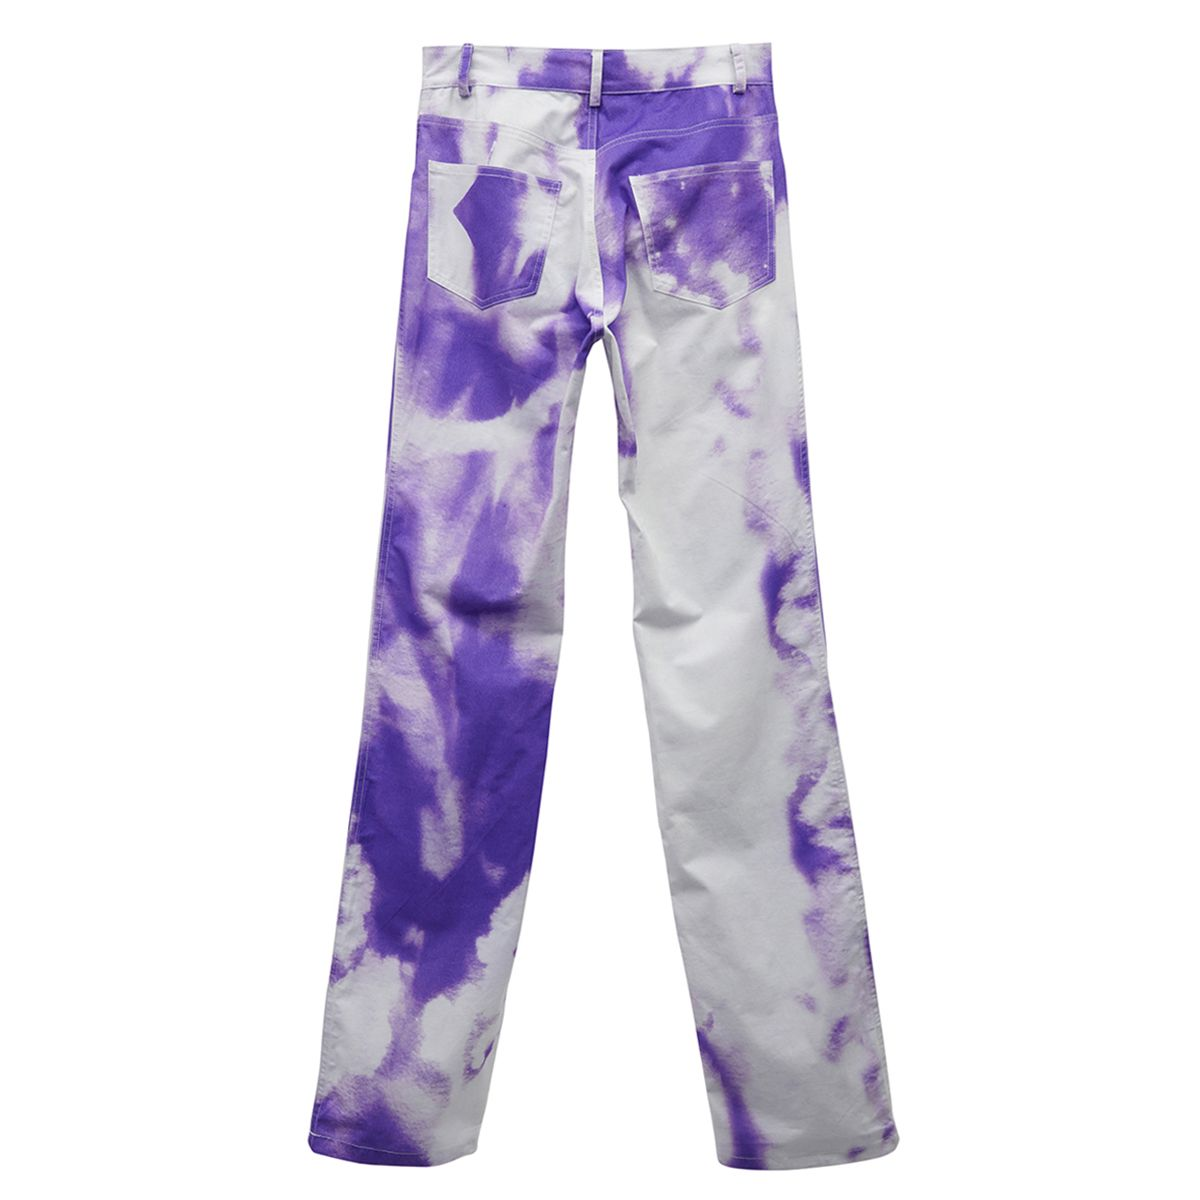 OTTORINGER 5 POCKET PANTS / PURPLE CLOUD